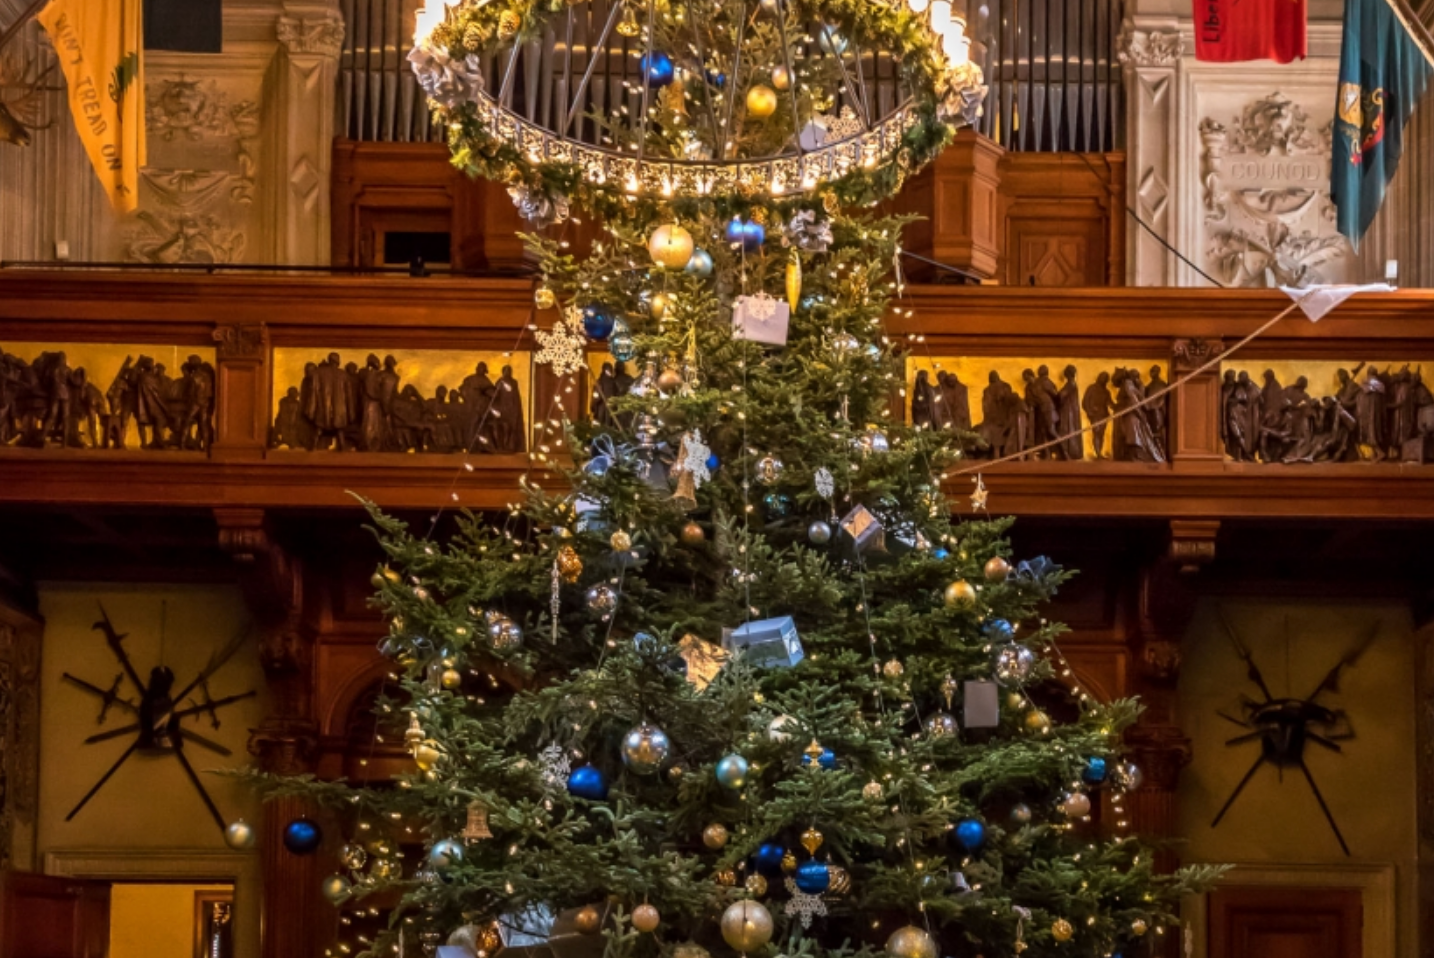 Christmas at Biltmore features more than 100 Christmas trees—each hand-decorated and styled. The Conservatory anchoring the Walled Garden is filled with ...